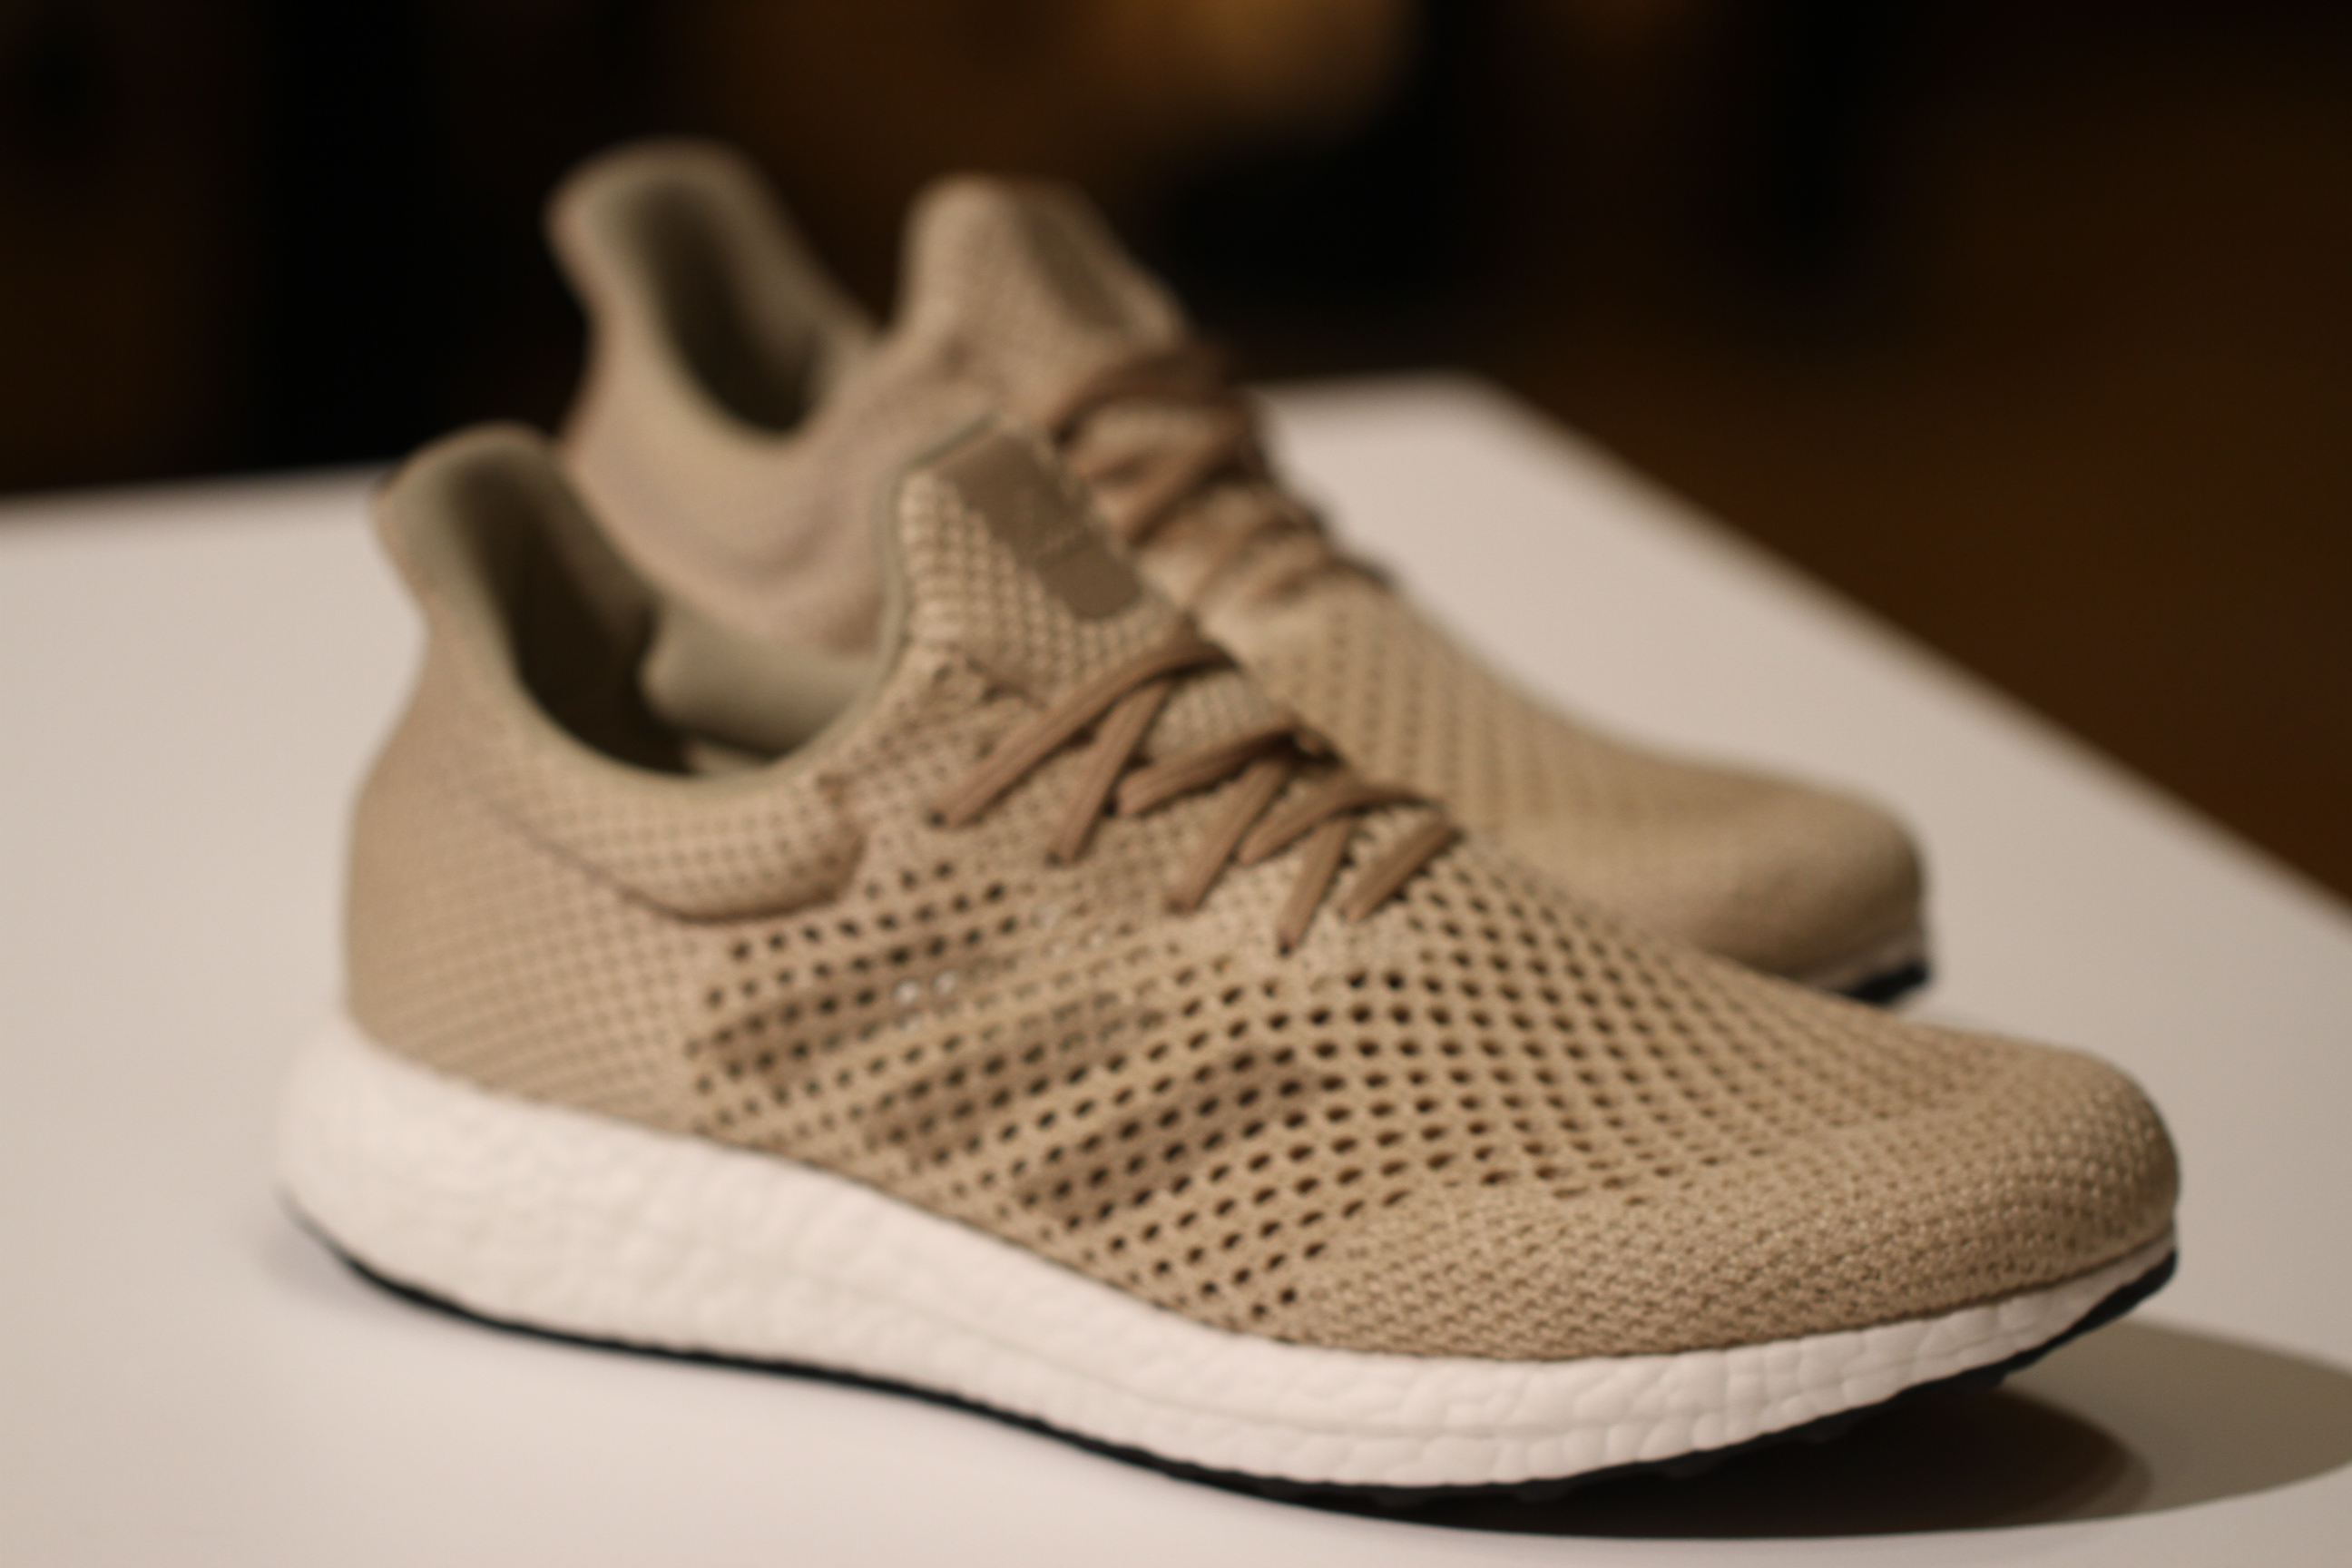 These Adidas kicks are woven from Biosteel fiber, a material designed to  replicate spider silk that was developed by a German biotech company.